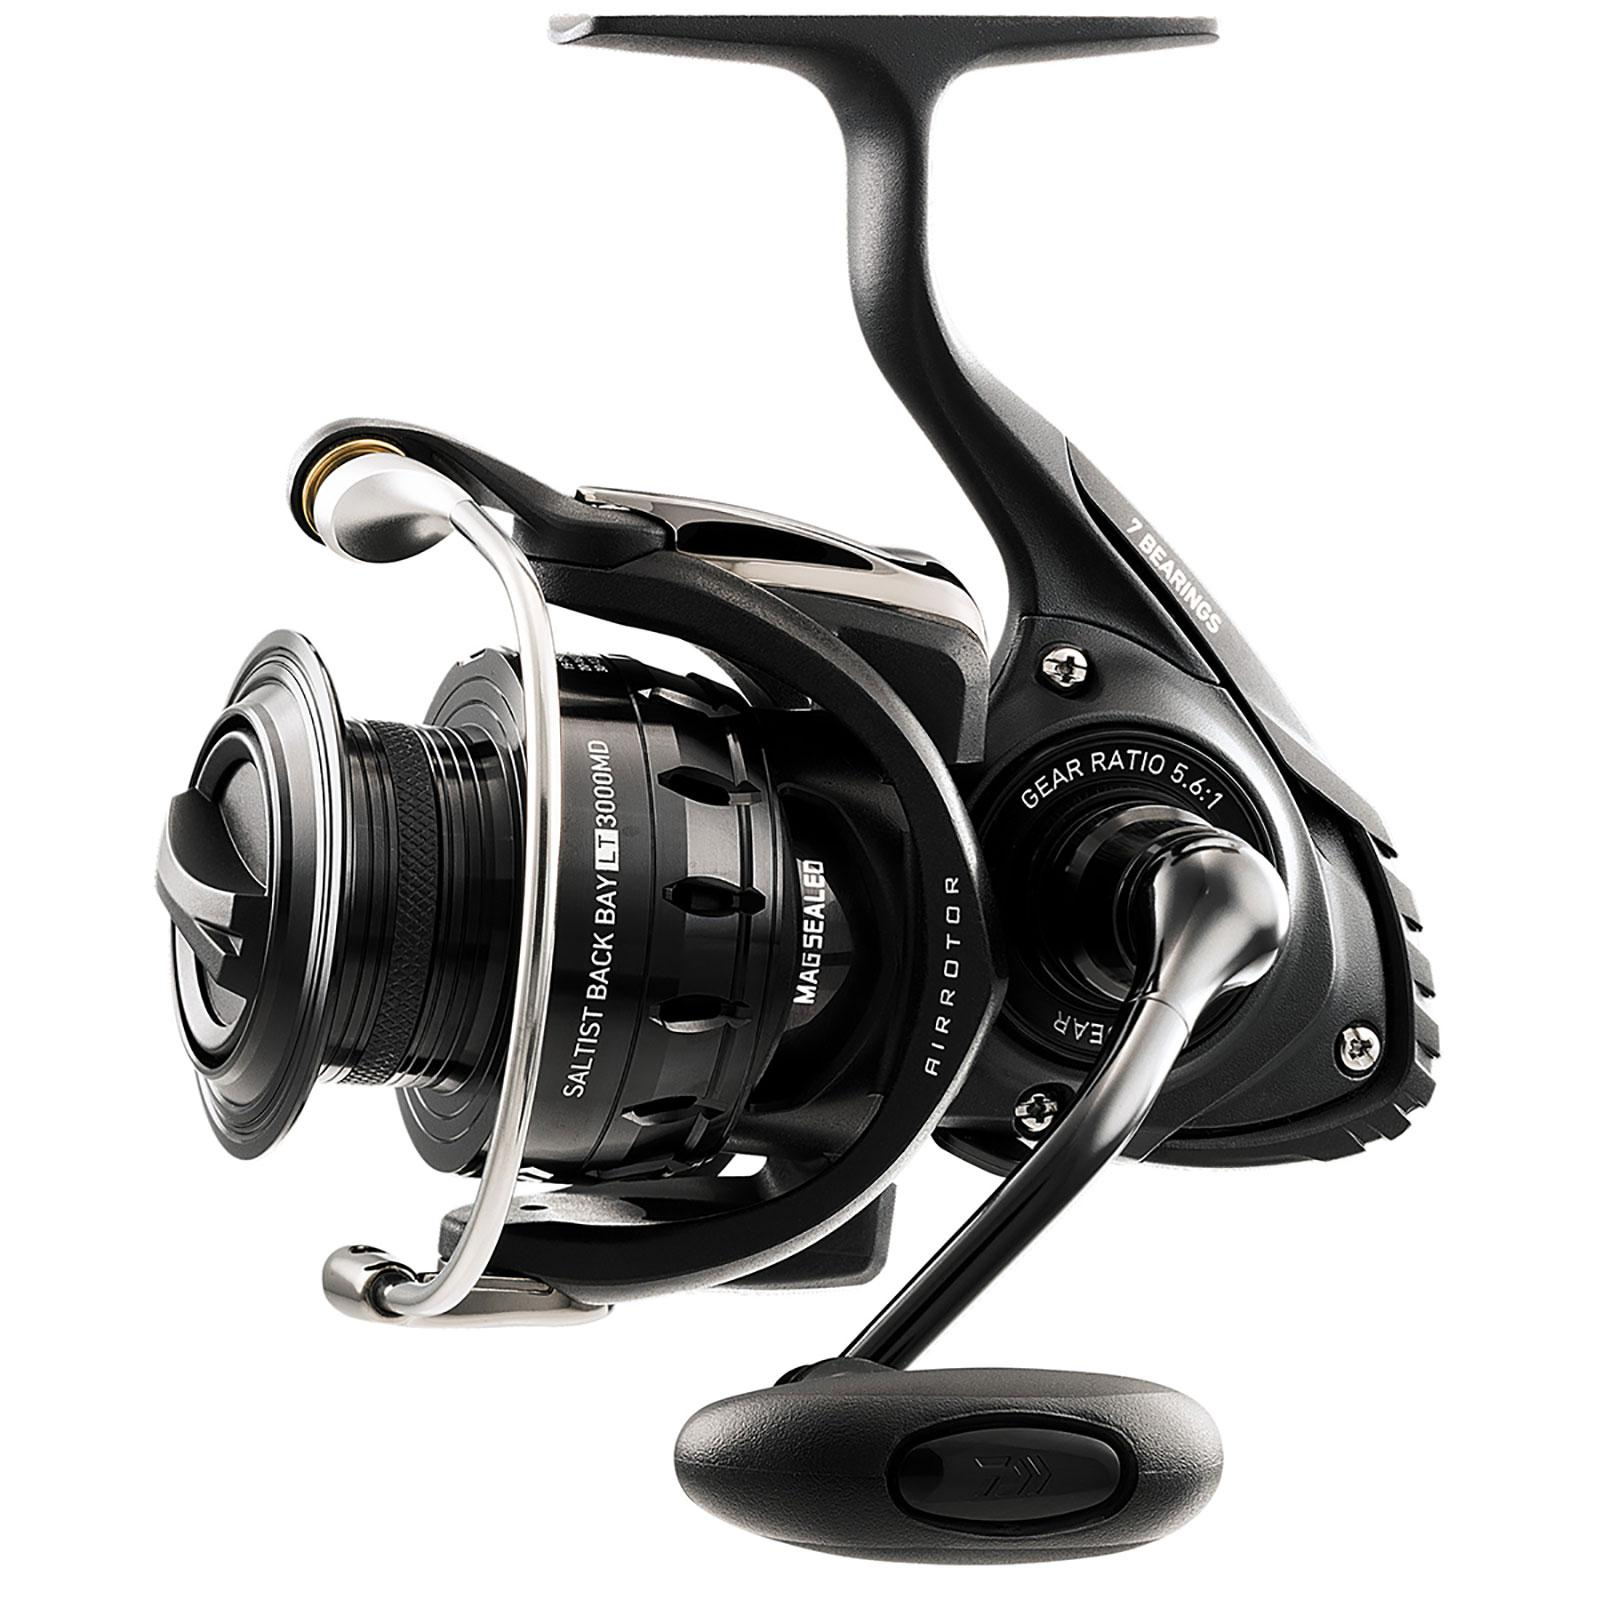 Daiwa Saltist Back Bay Spinning Reel